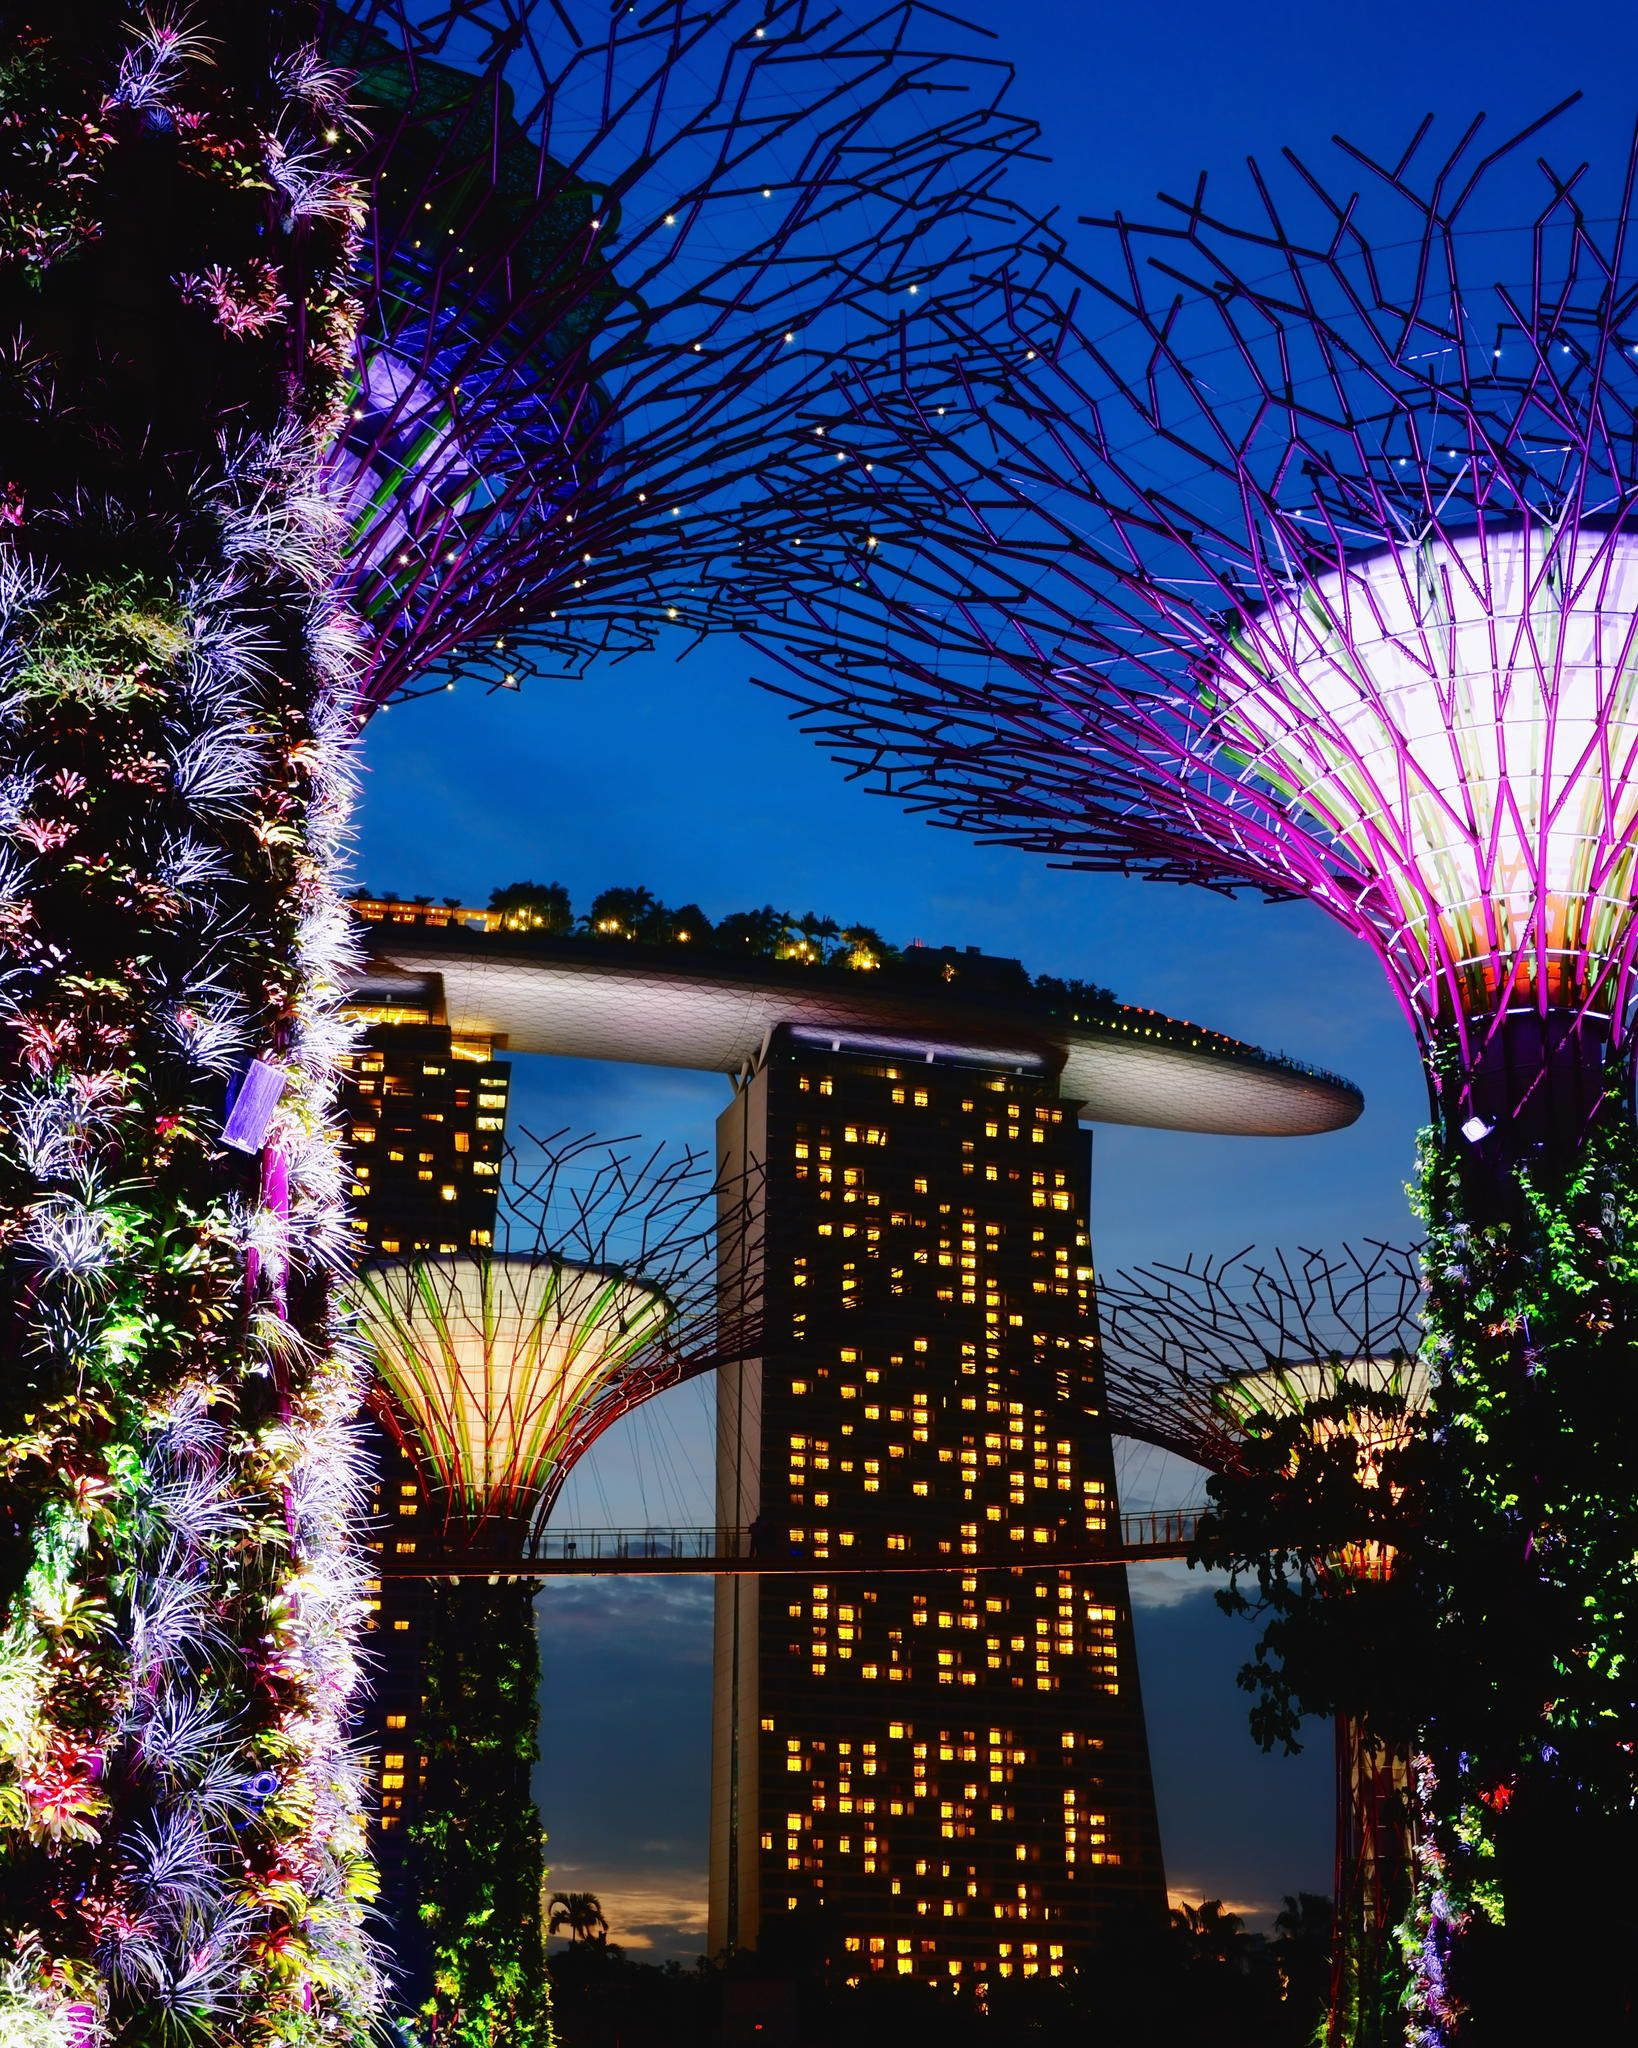 a4d62ed06f6f299b2db9cff09d16845a - Best Time To Go To Gardens By The Bay